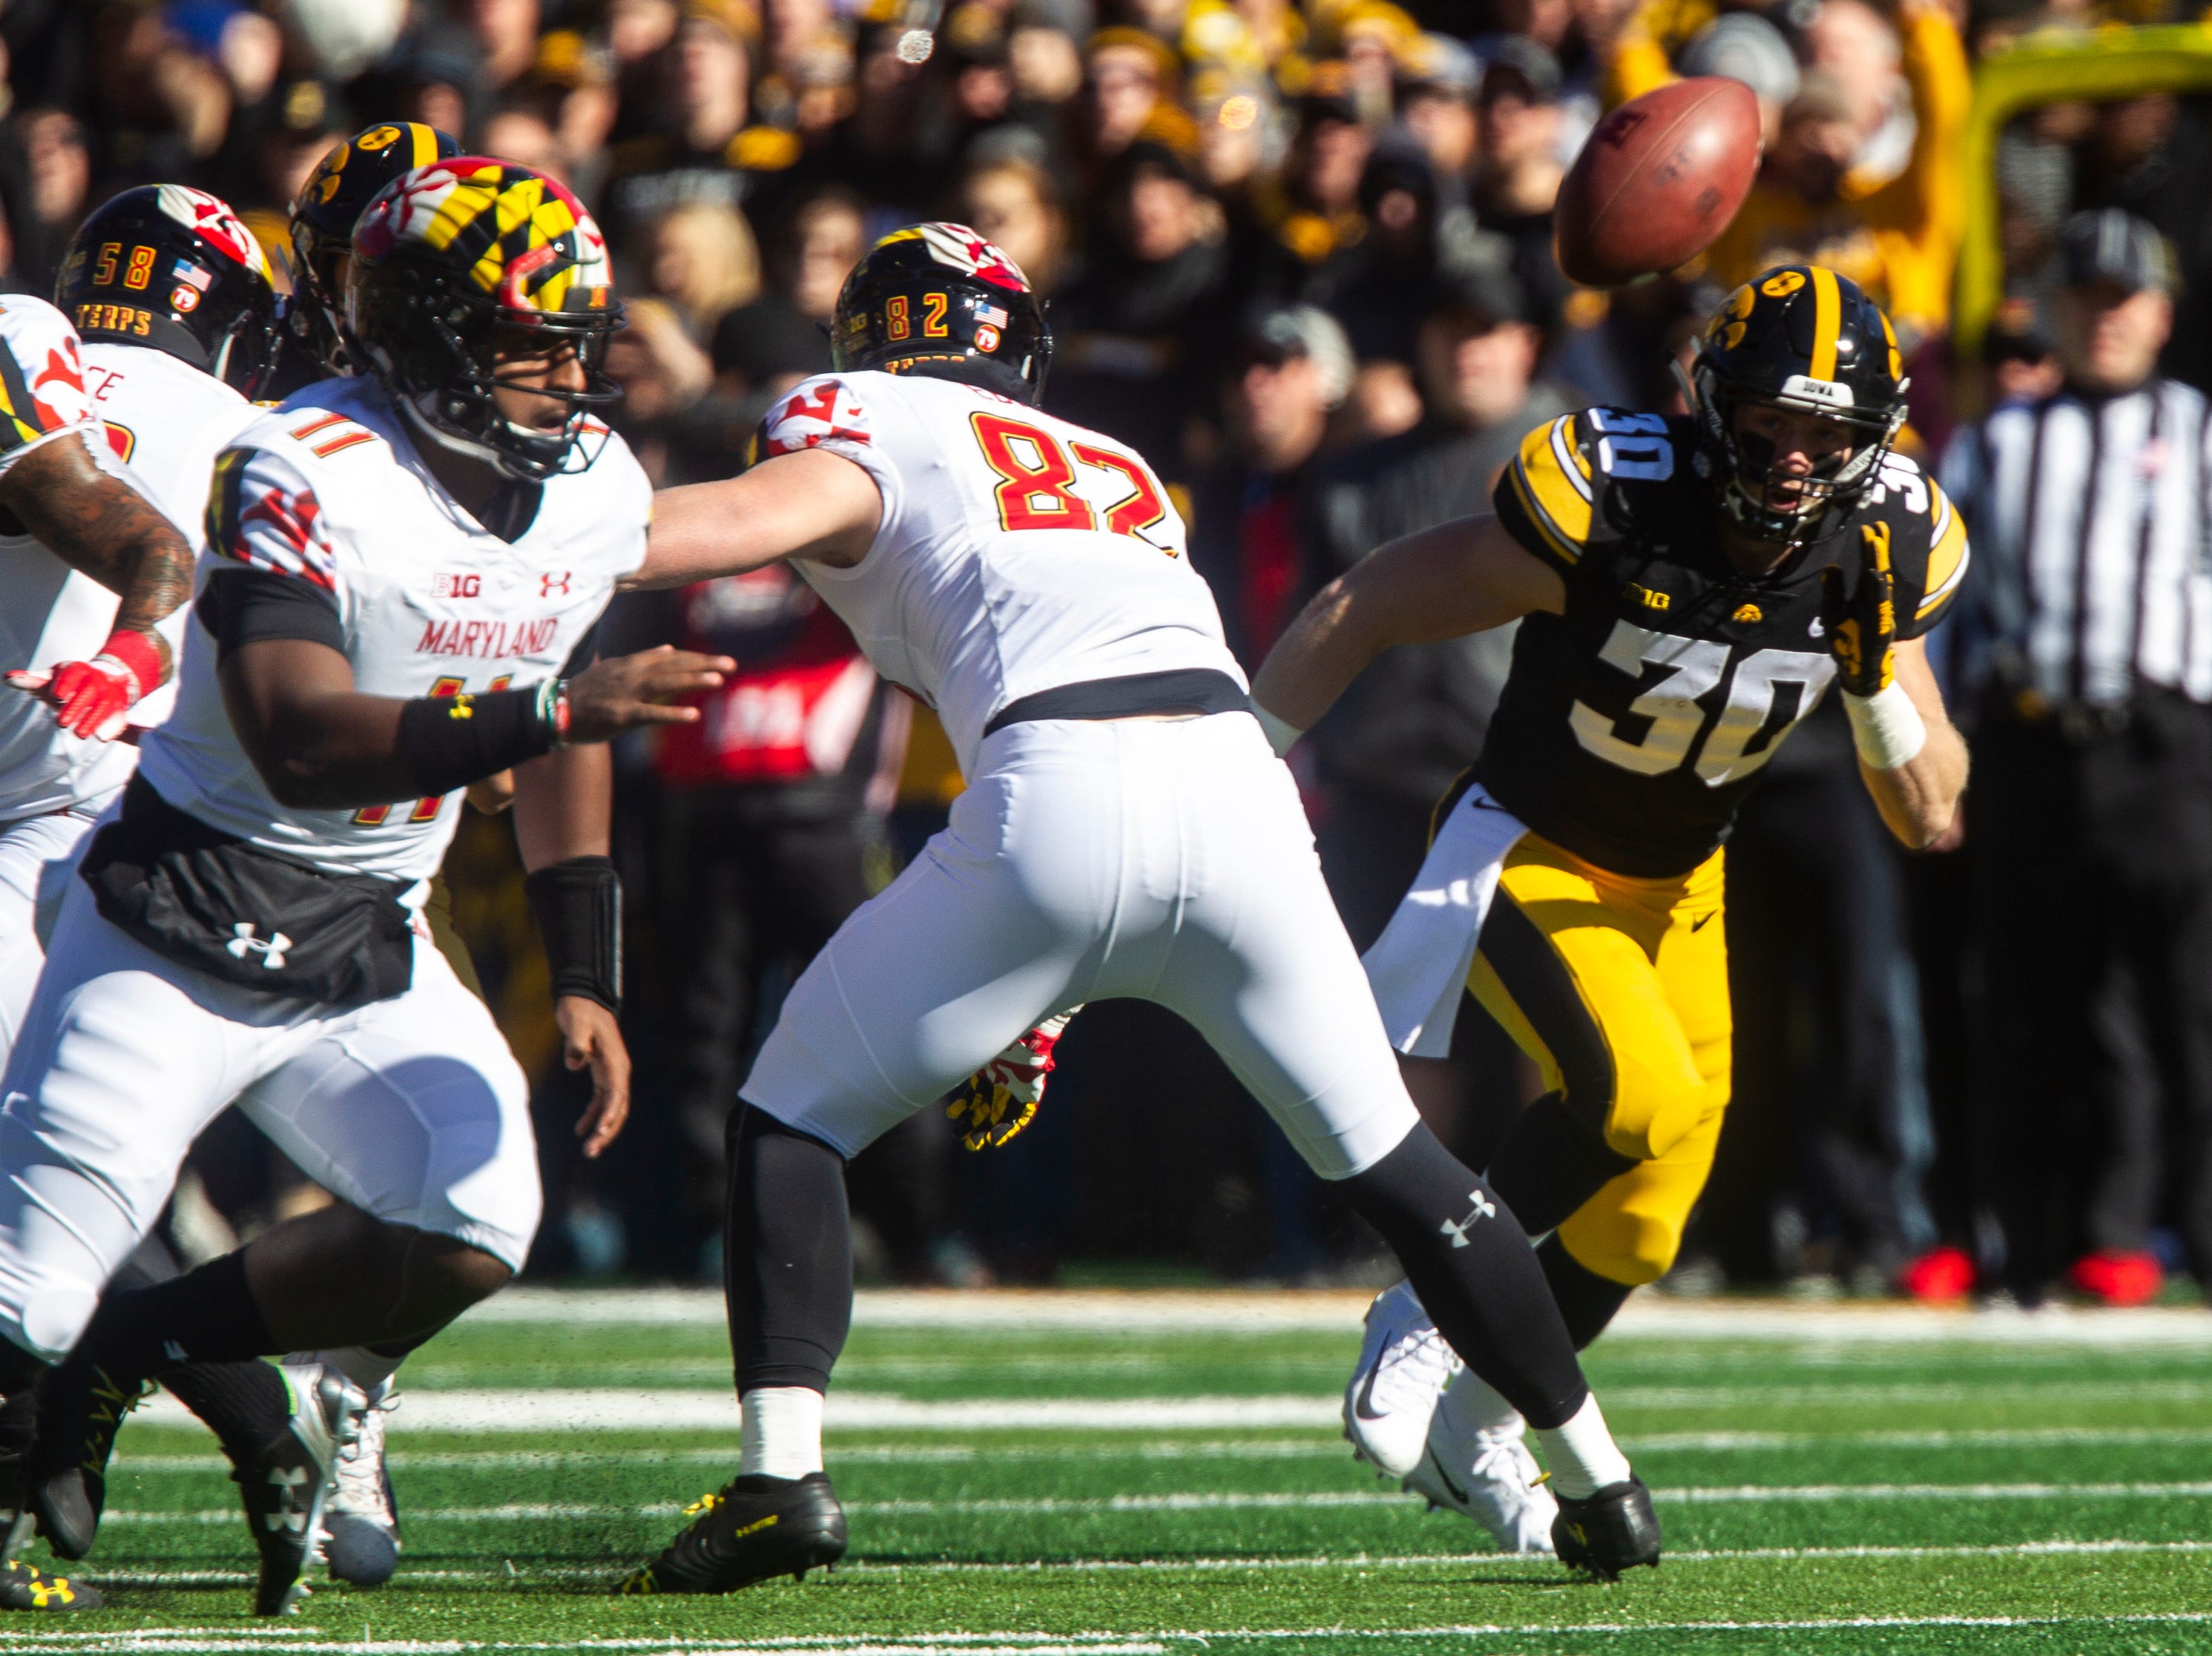 Iowa defensive back Jake Gervase (30) chases down the ball Maryland quarterback Kasim Hill (11) bobbled from the snap during an NCAA Big Ten conference football game on Saturday, Oct. 20, 2018, at Kinnick Stadium in Iowa City.